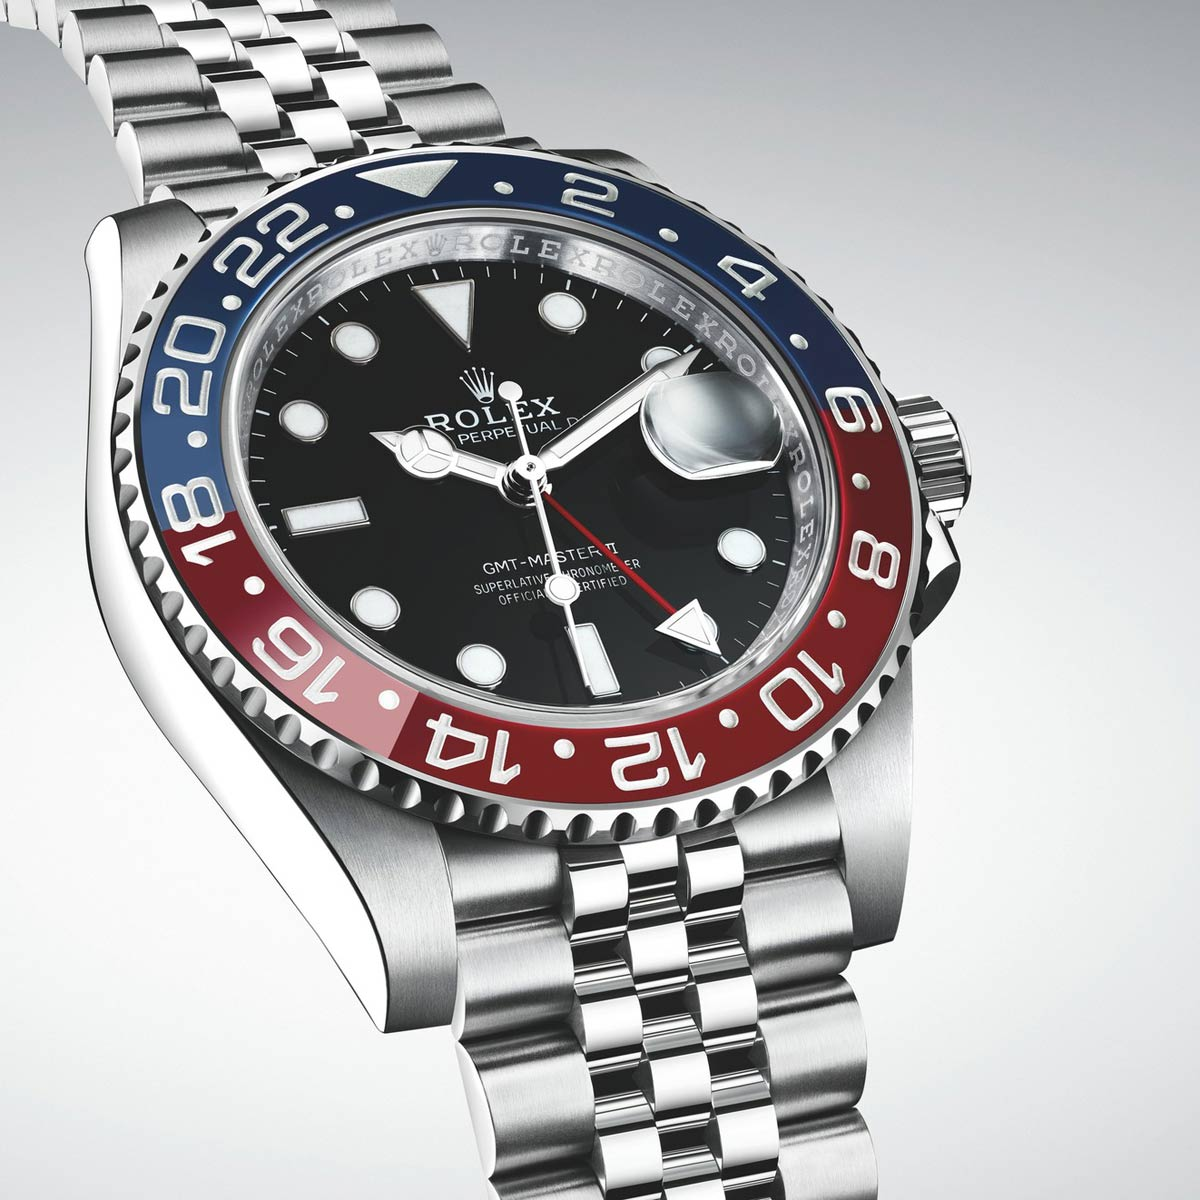 [Image: Rolex-Oyster-Perpetual-GMT-Master-II-004.jpg]